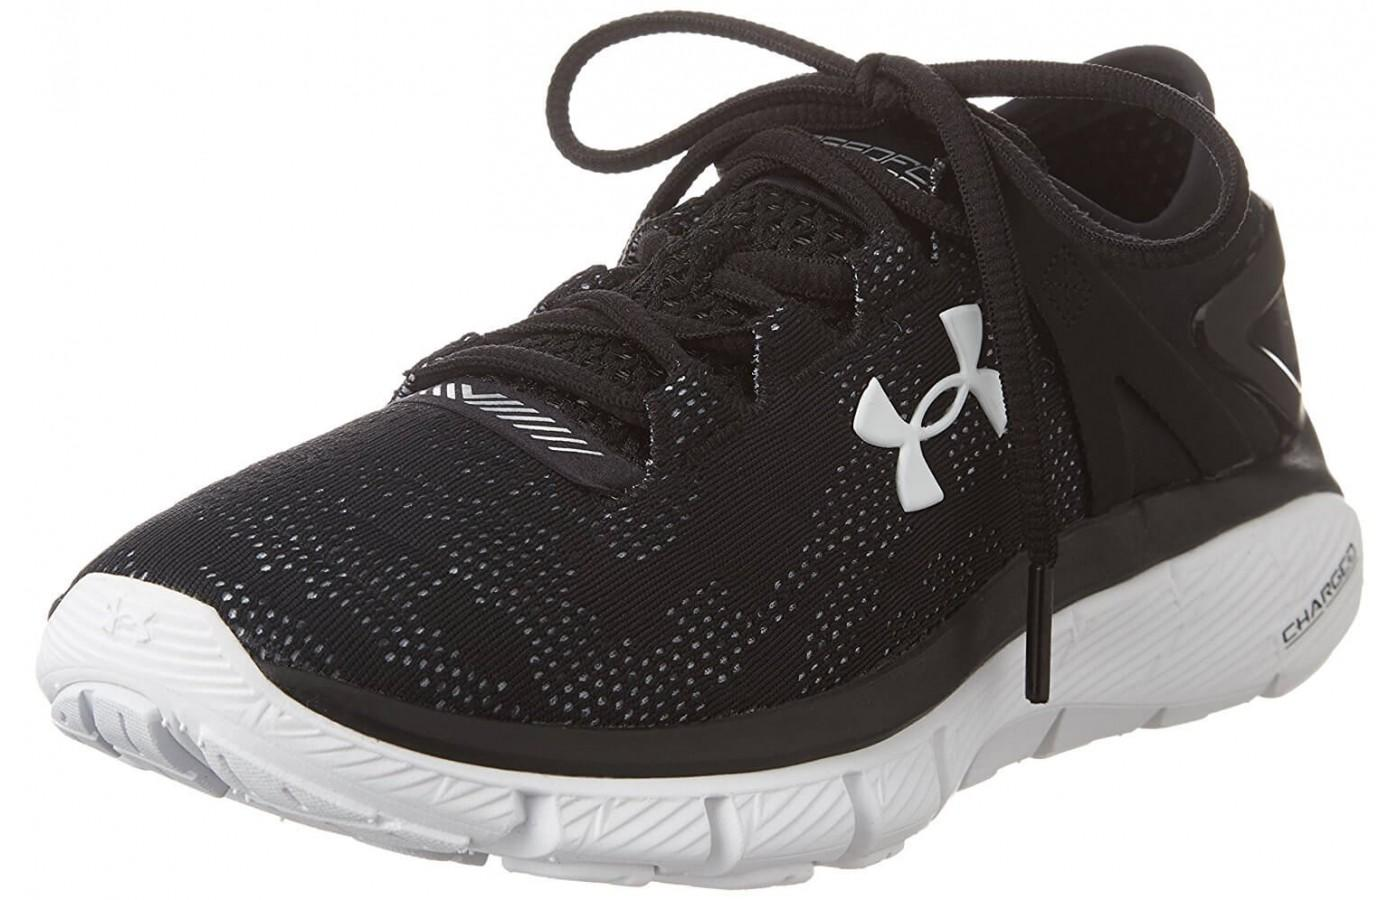 the eye-catching and comfortable Under Armour SpeedForm Fortis Vent at an angle